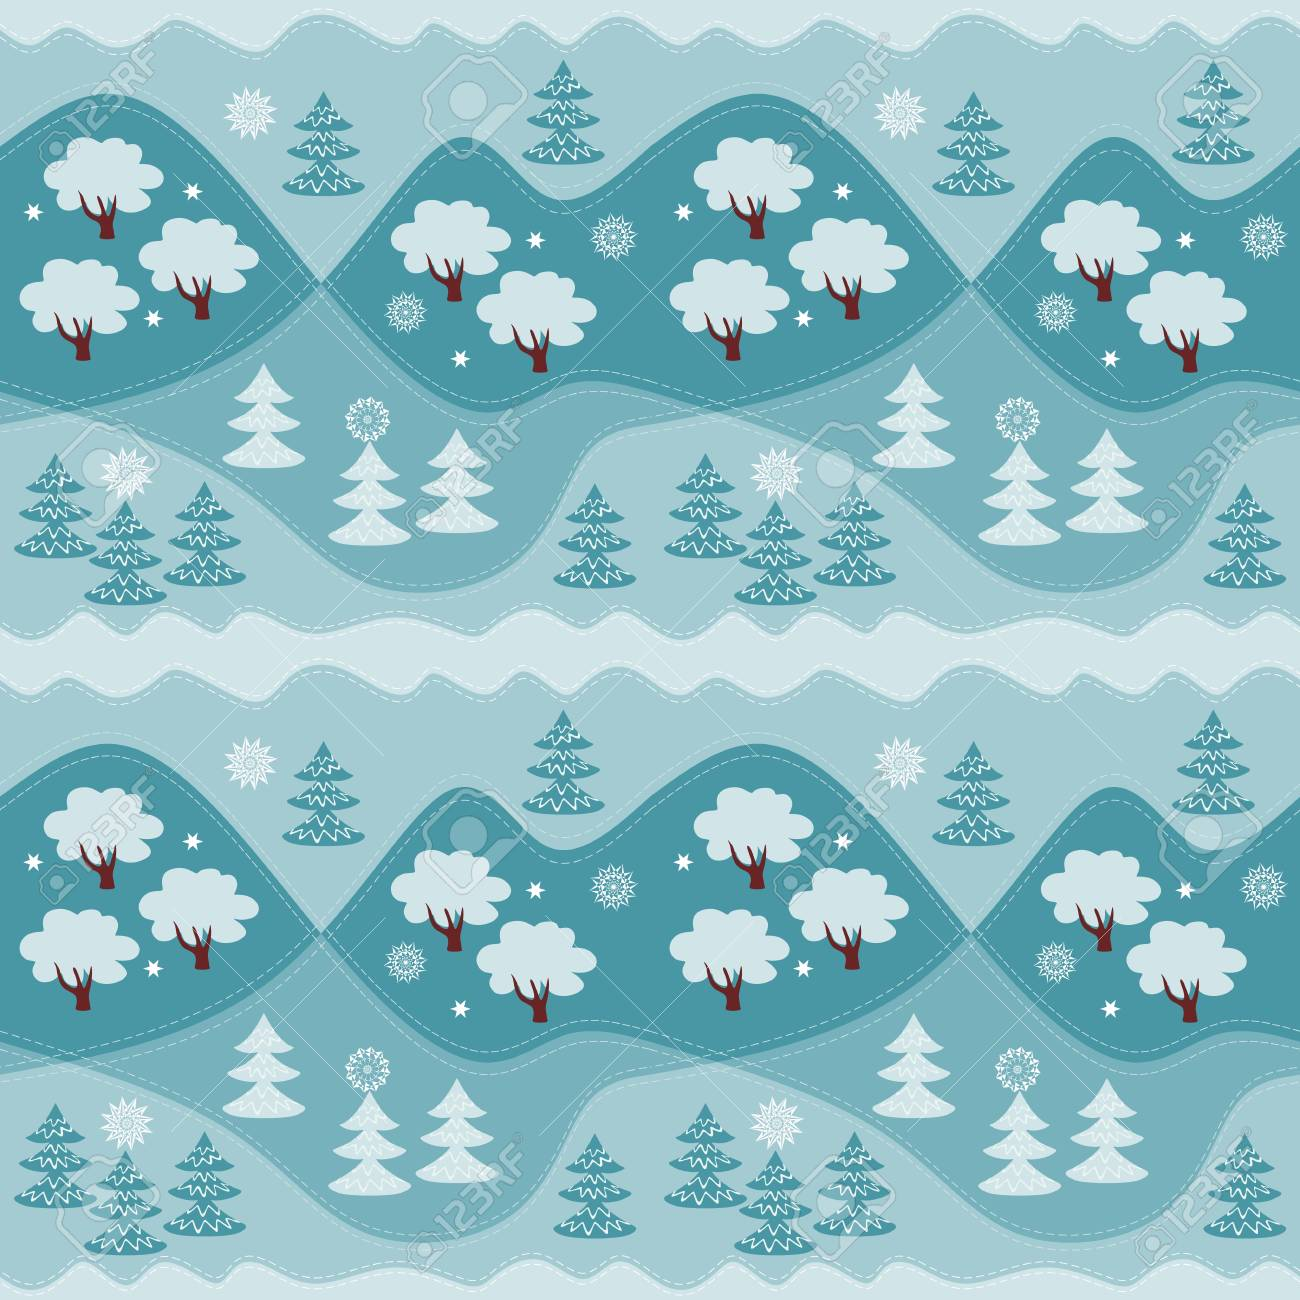 Vector - Winter endless pattern. Print for fabric, paper, wallpaper, wrapping. Vector illustration. Woodland.